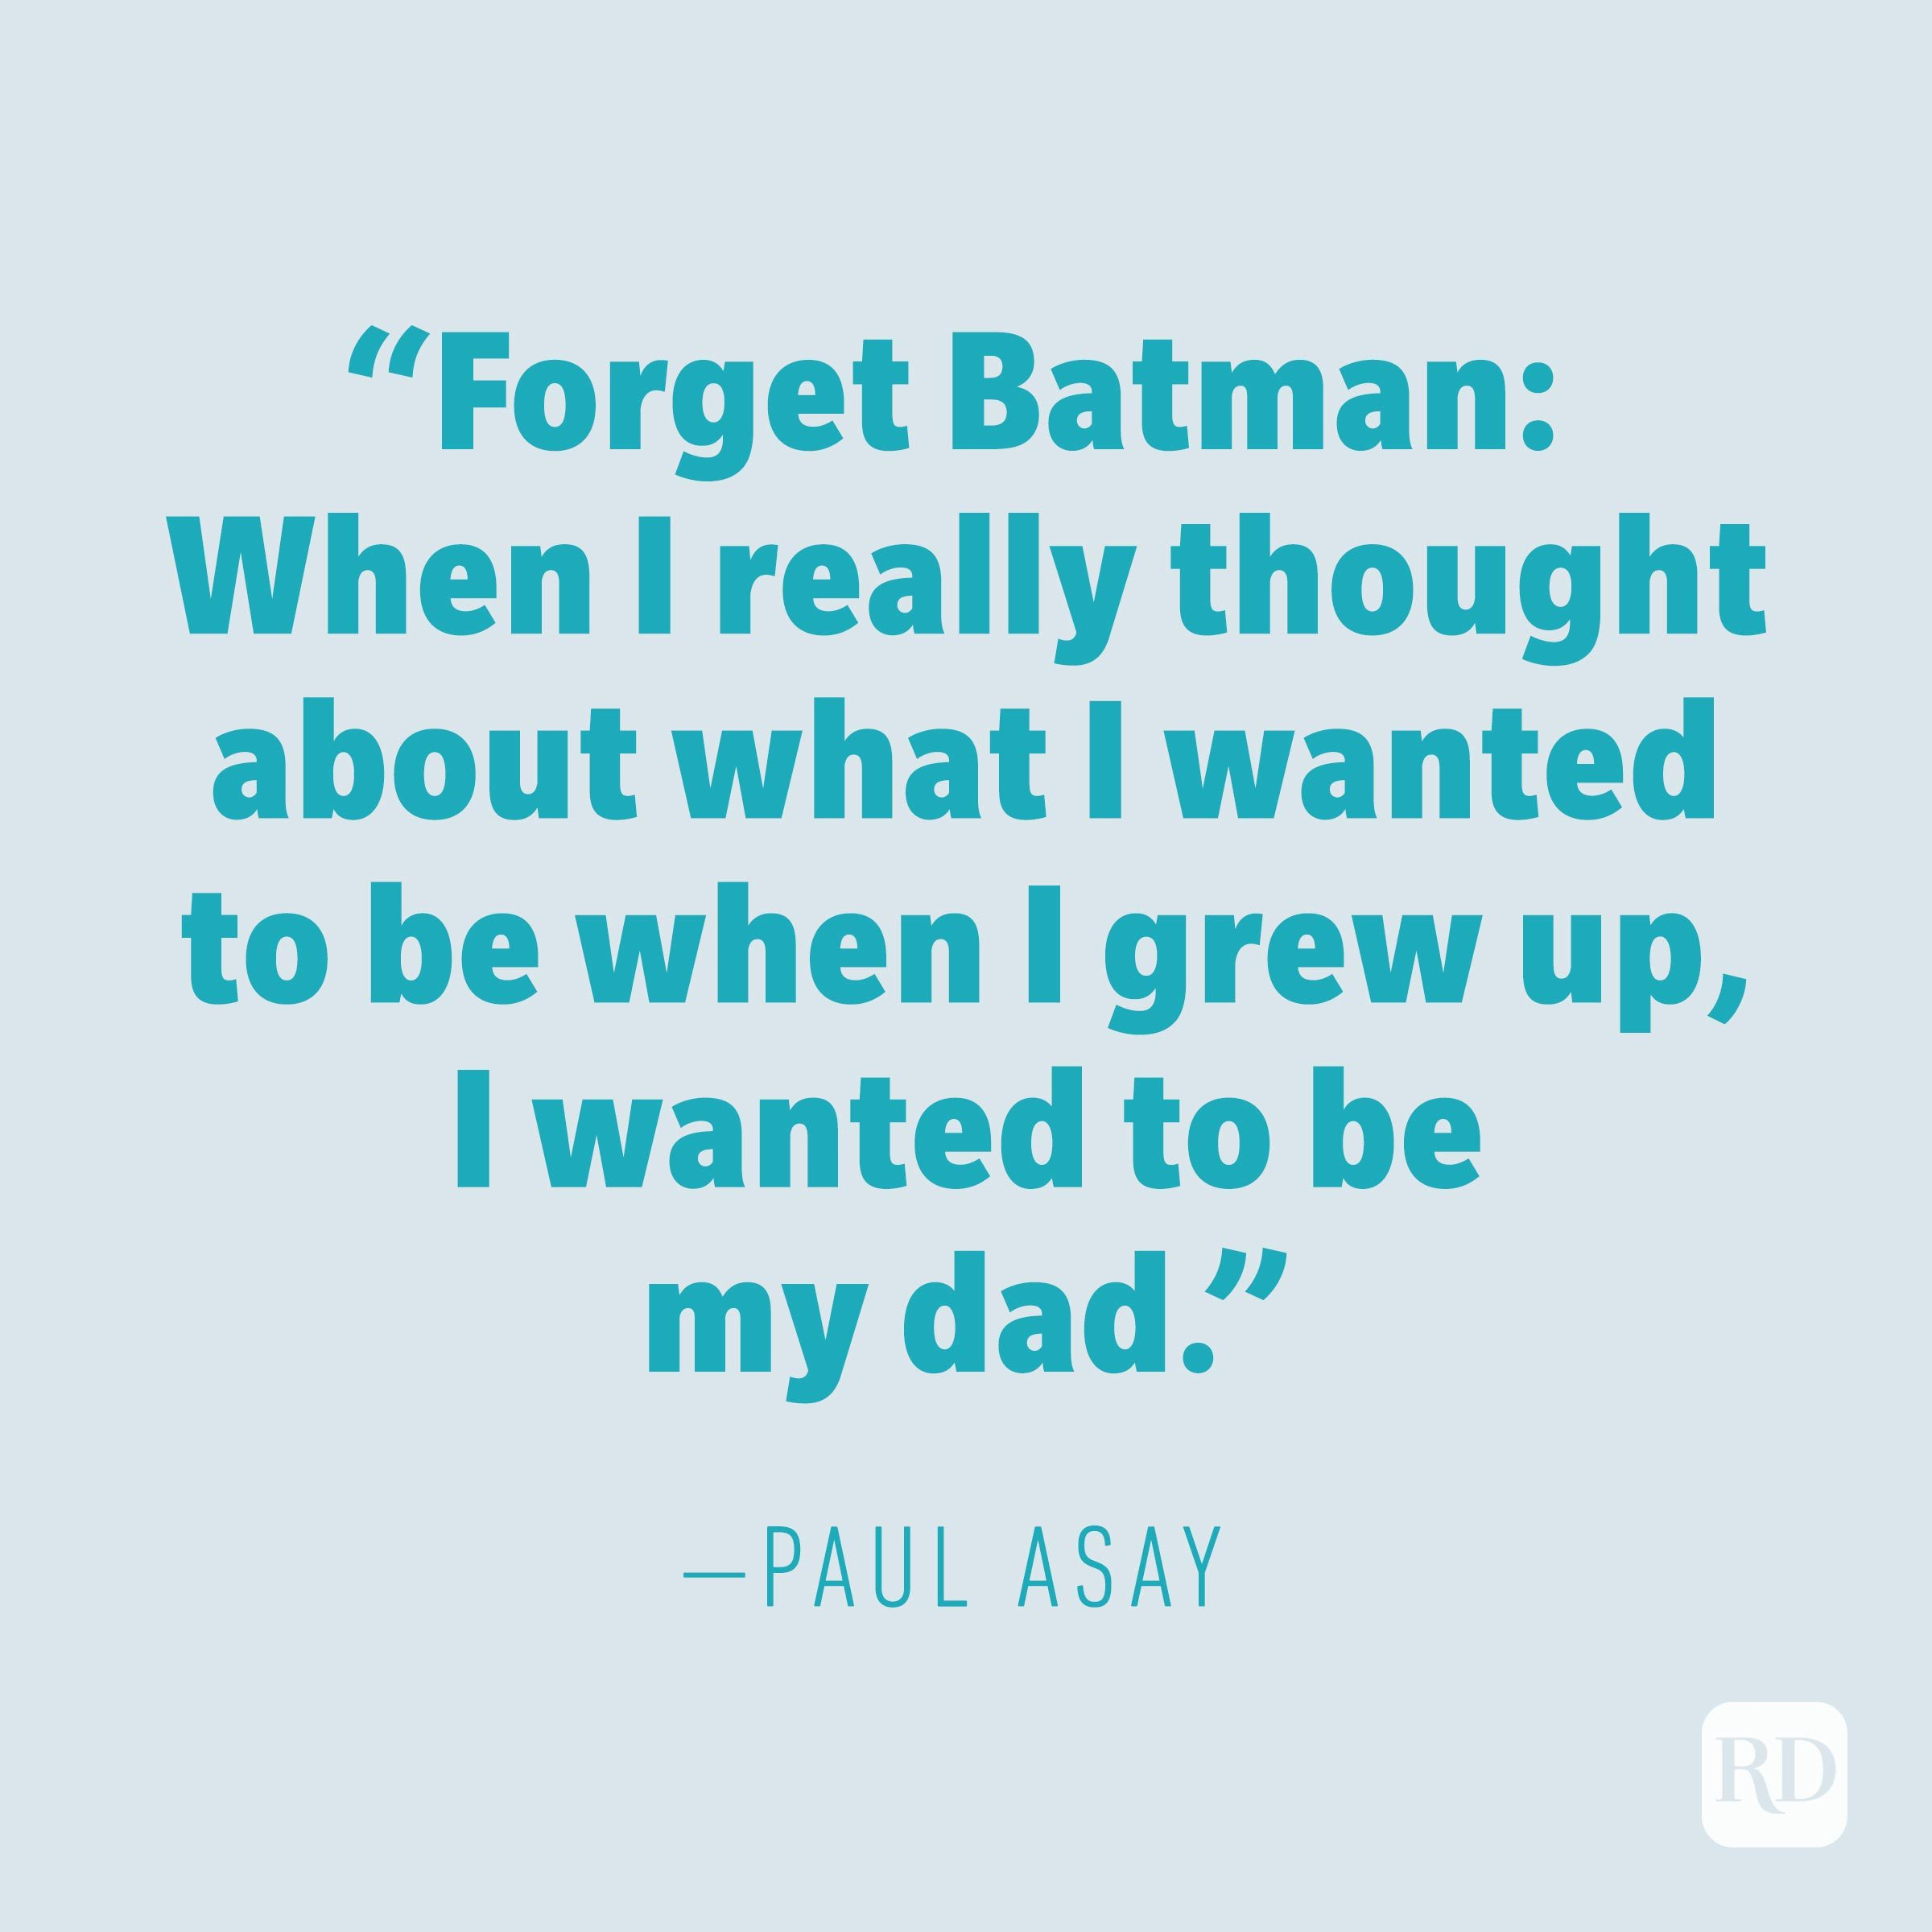 """Forget Batman: When I really thought about what I wanted to be when I grew up, I wanted to be my dad."" —PAUL ASAY"